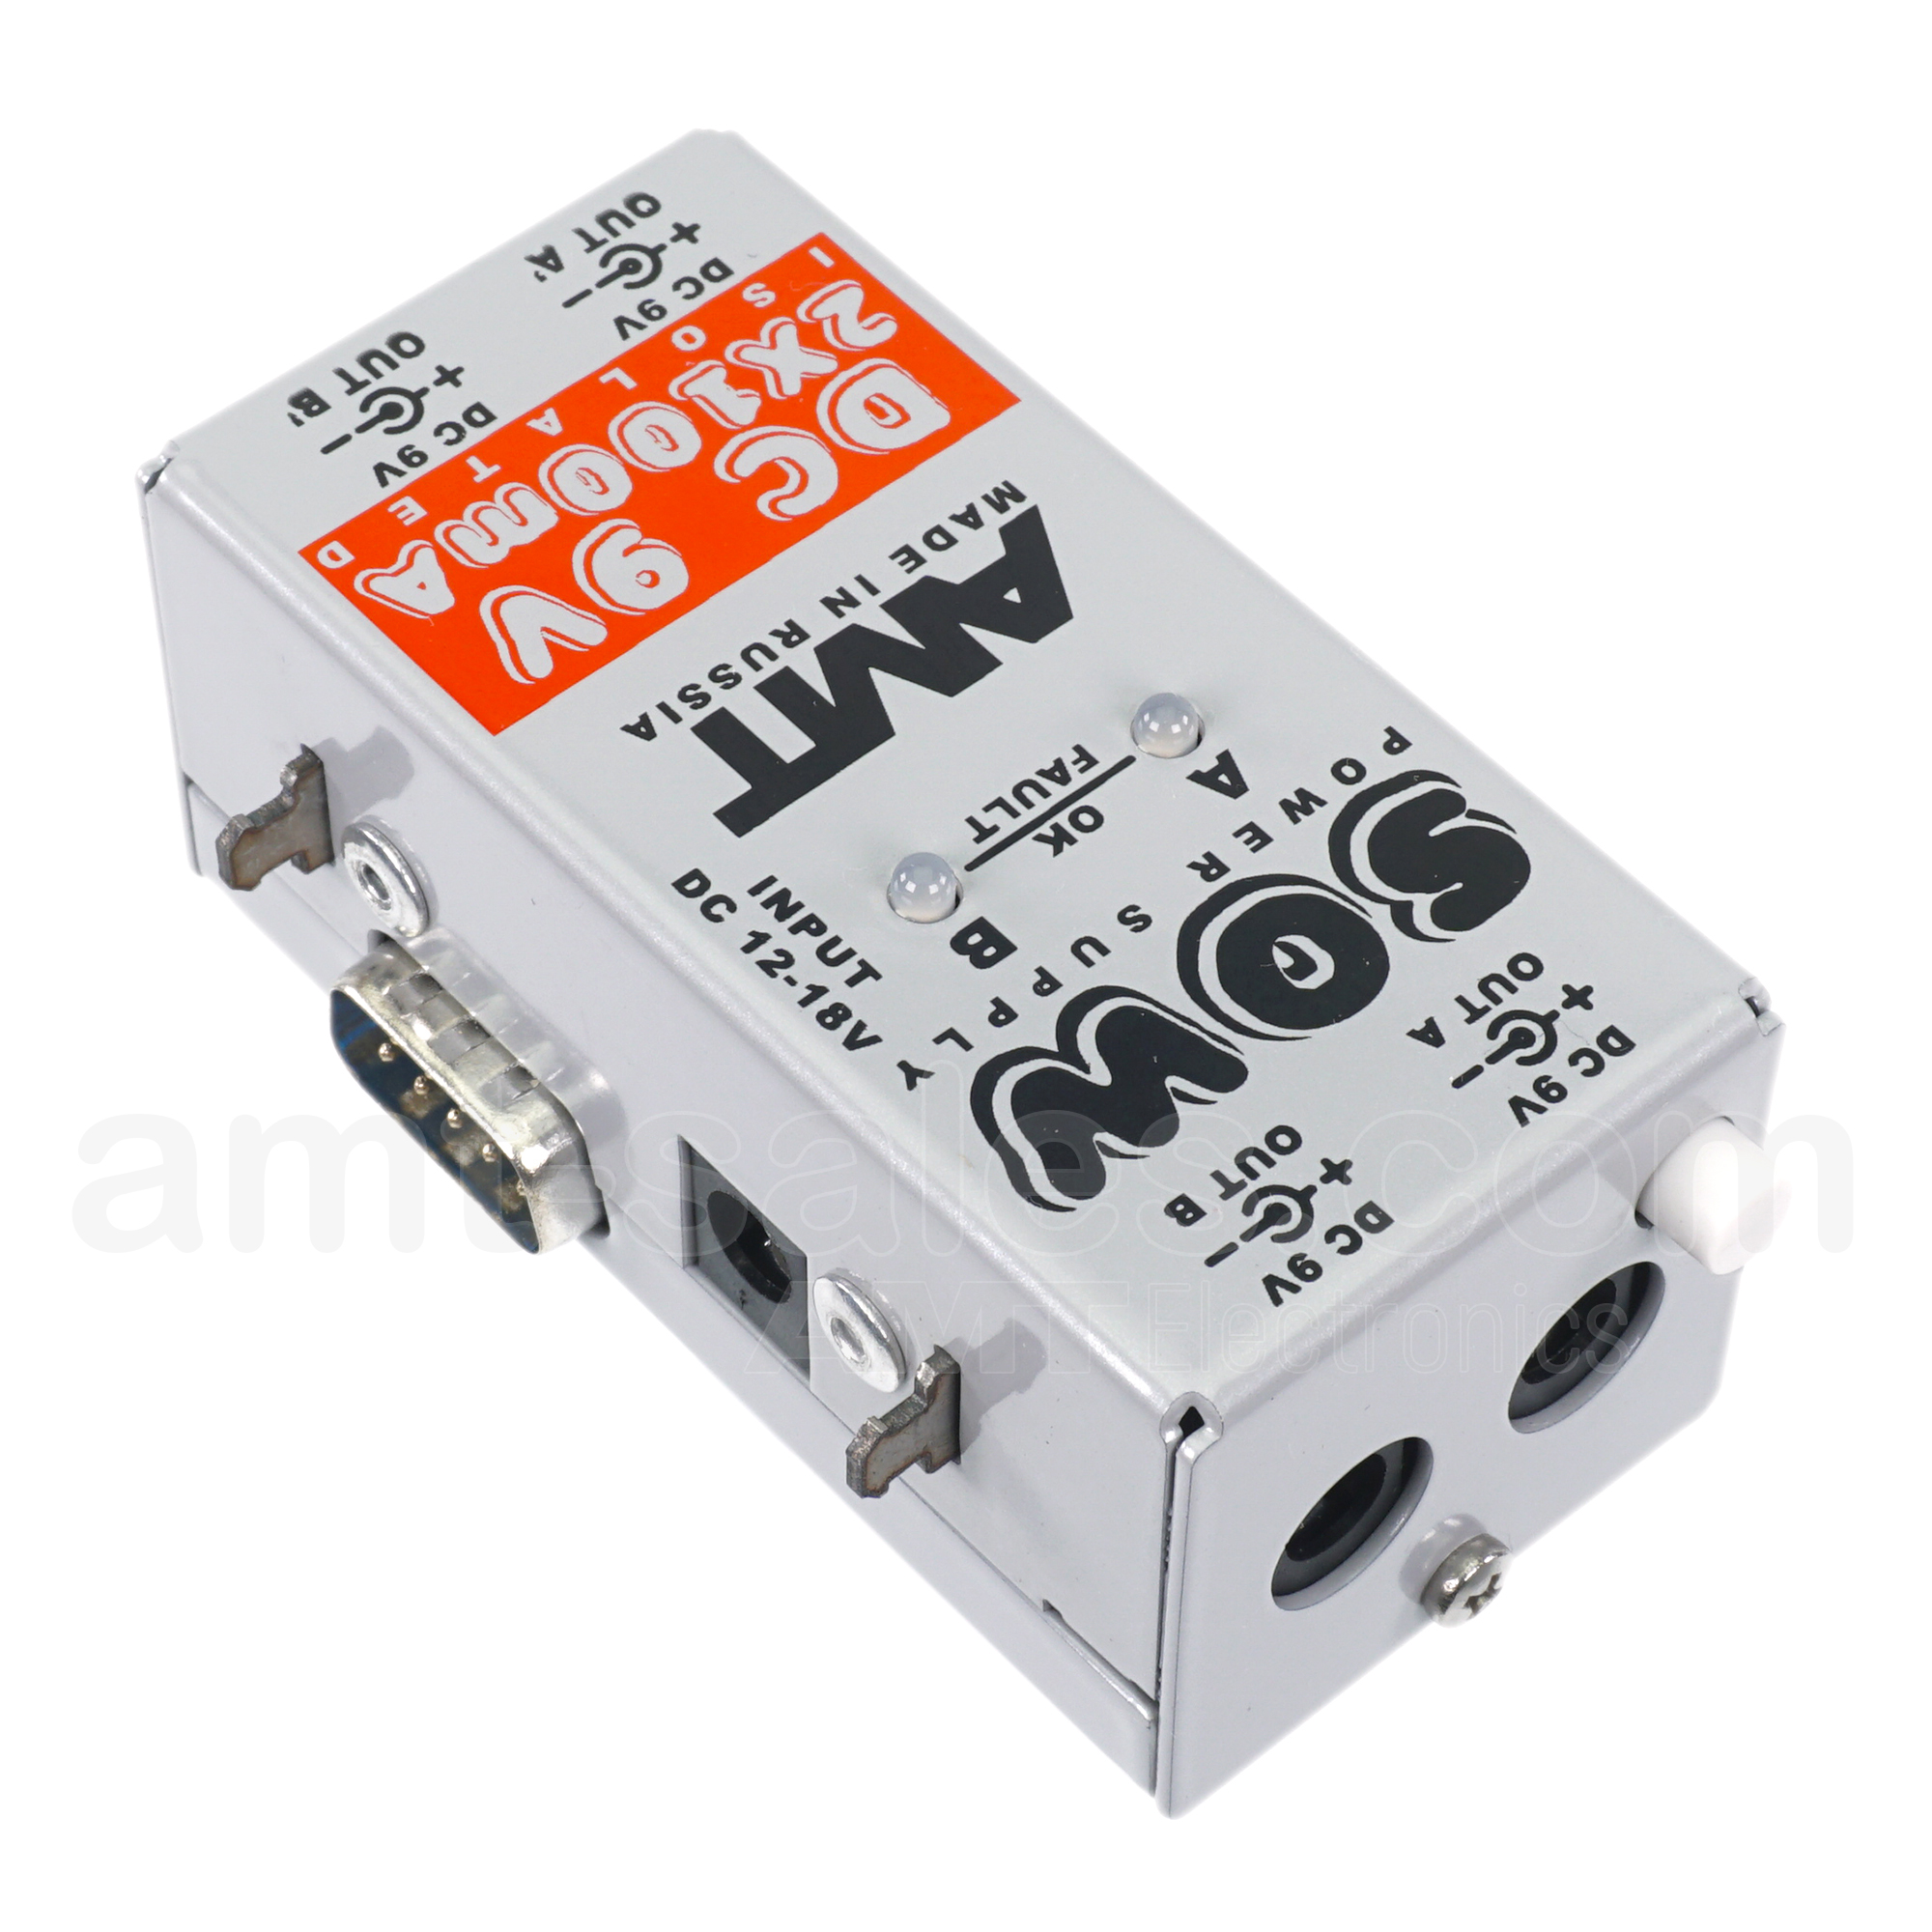 AMT SOW PS-2 DC-9V 2x100mA - power supply module